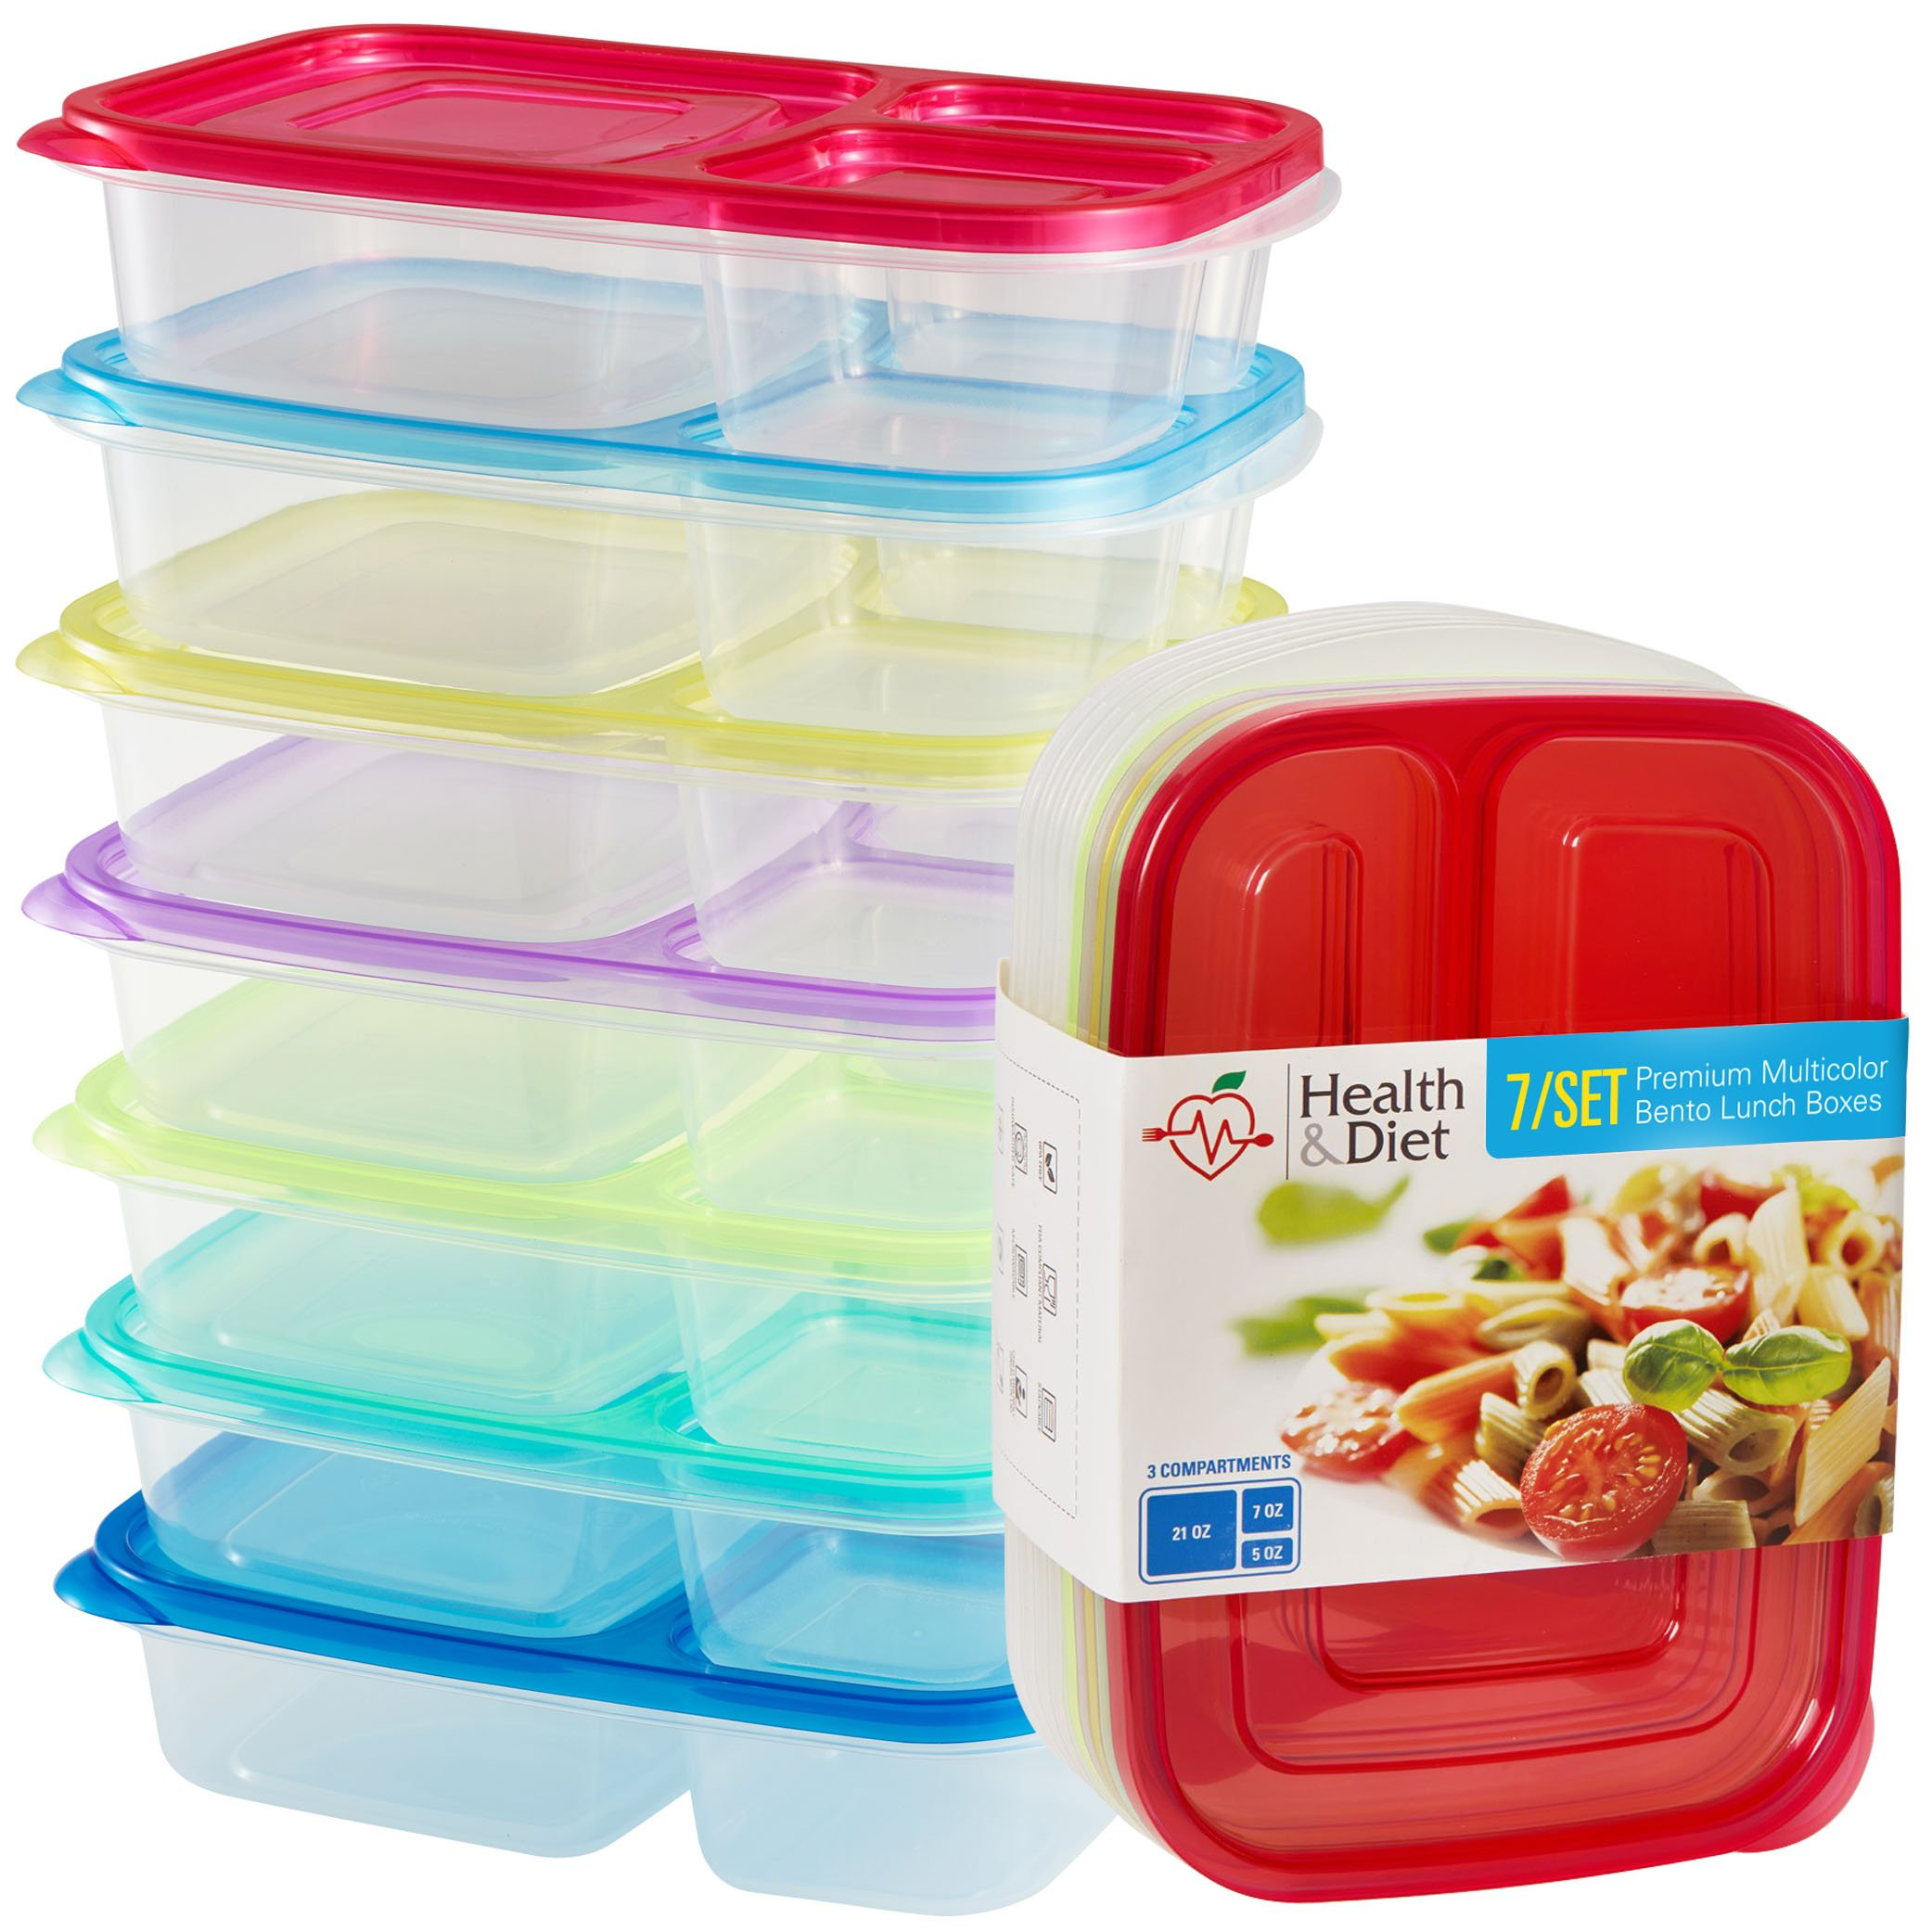 Health & Diet 3 Compartment, Set of 7, Premium Reusable Plastic Bento Lunch Boxes / Food Storage Containers